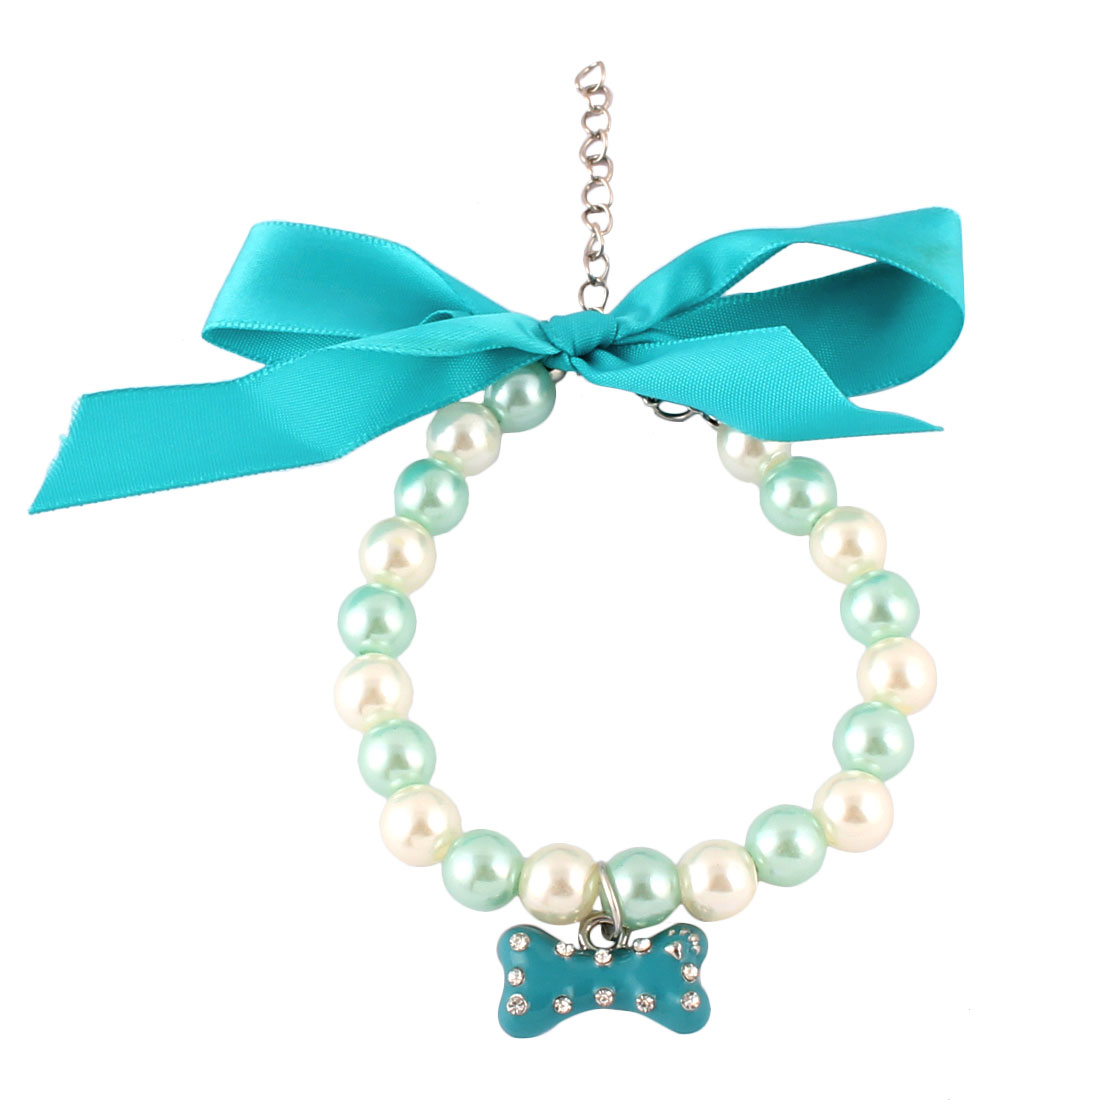 Plastic Bowknot Pet Ornament Adjustable Pet Necklace Blue 20cm~25cm Girth